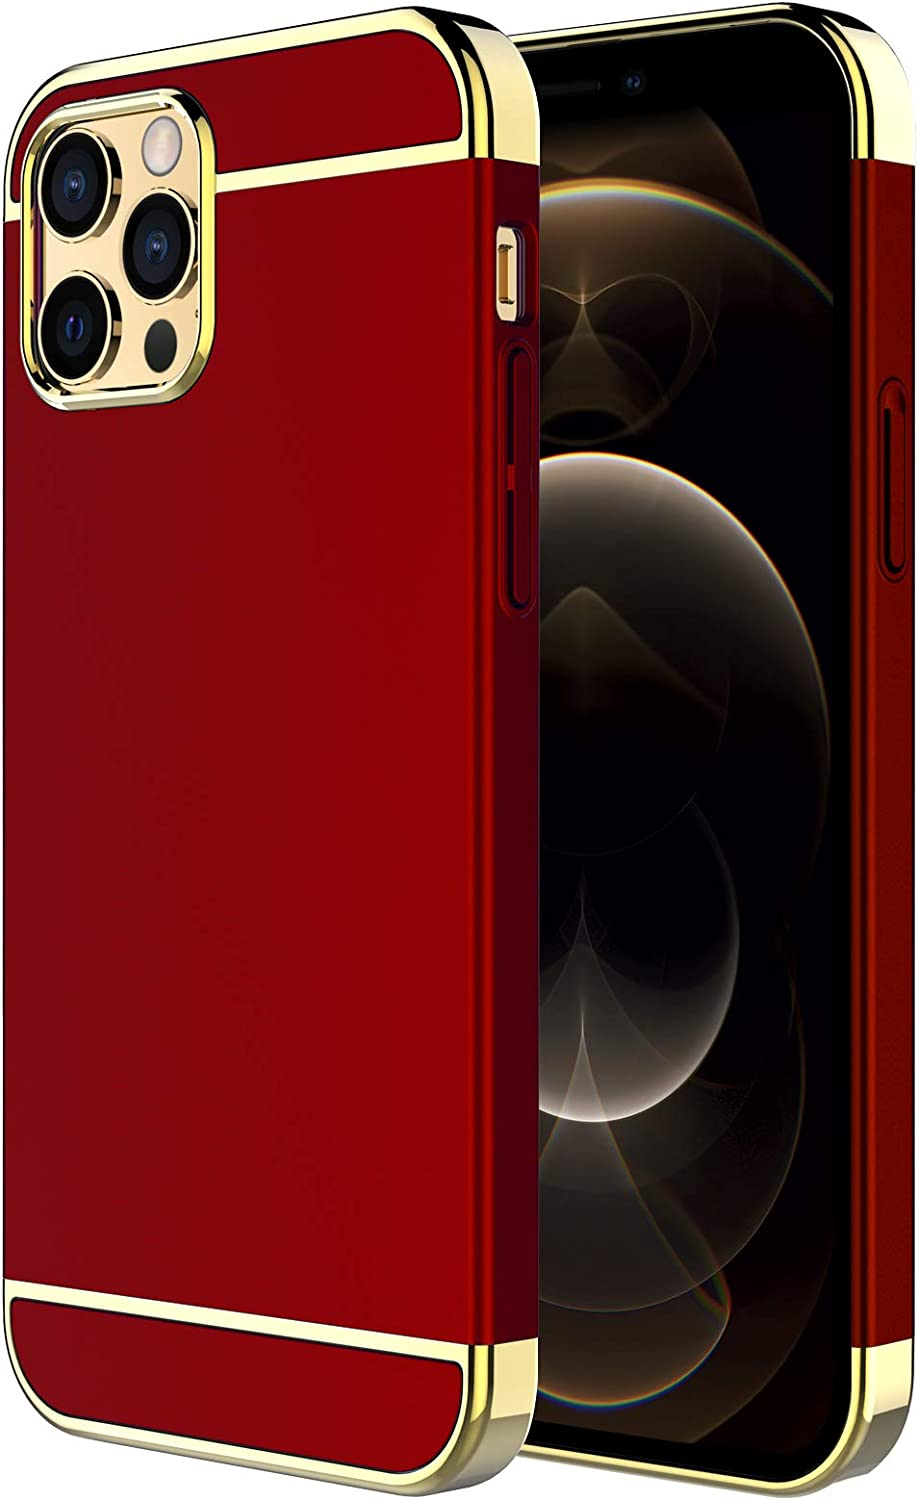 iPhone 12 Case,iPhone 12 Pro Case,RORSOU 3 in 1 Ultra Thin and Slim Hard Case Coated Non Slip Matte Surface with Electroplate Frame for Apple iPhone 12/12 Pro (6.1